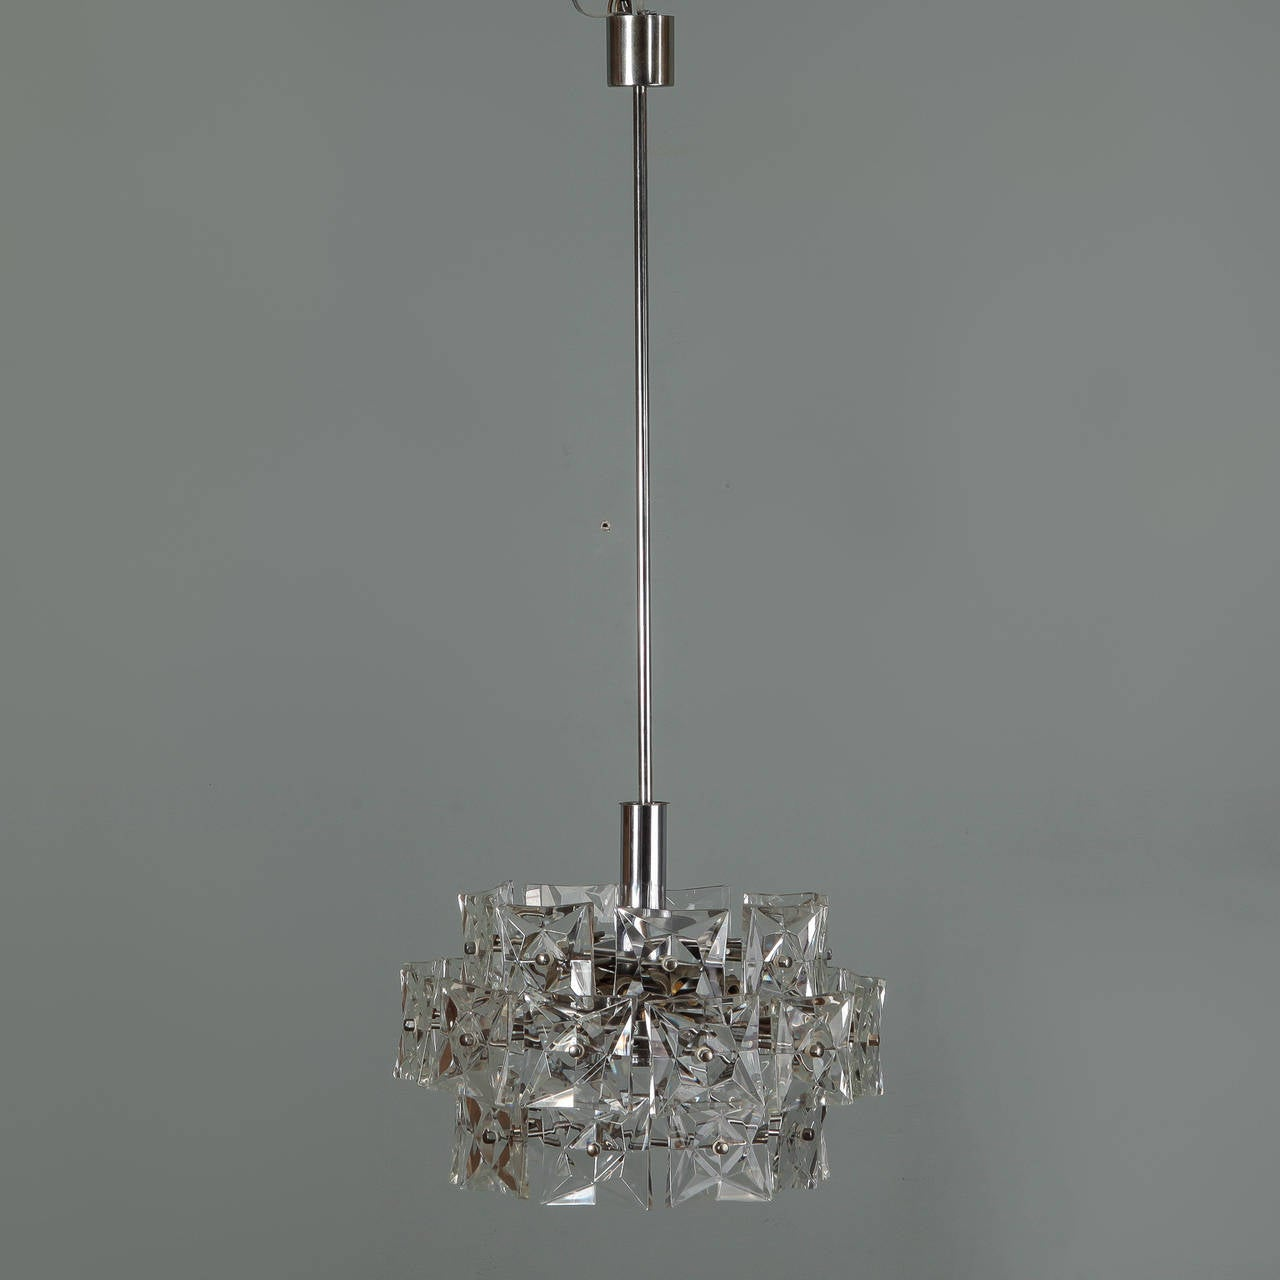 Mid Century Kinkeldey Three Tier Round Hanging Light Fixture For Wiring Electrical Fixtures Crystal Attributed To Silver Tone Ceiling Canopy Internal Structure Supports